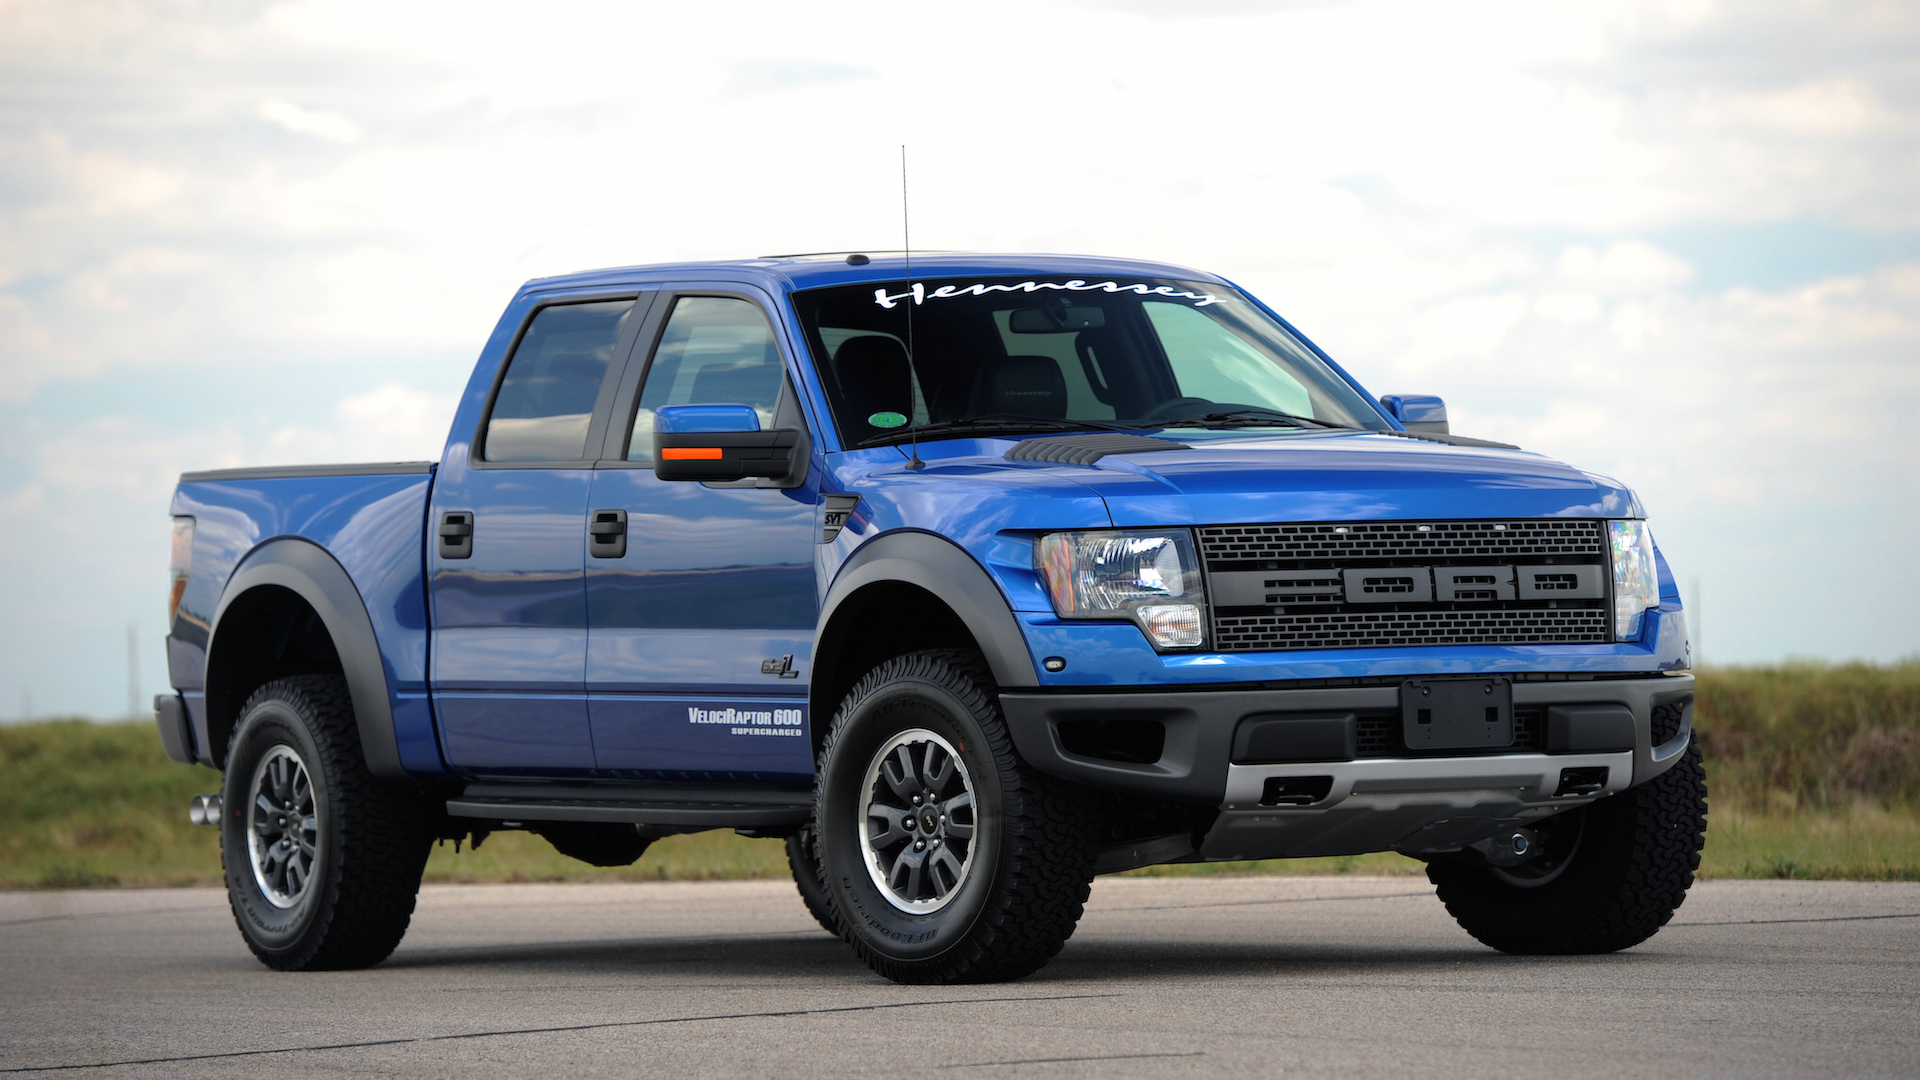 Hennessey VelociRaptor 600 and 800 based on Ford F150 SVT Raptor 6 2